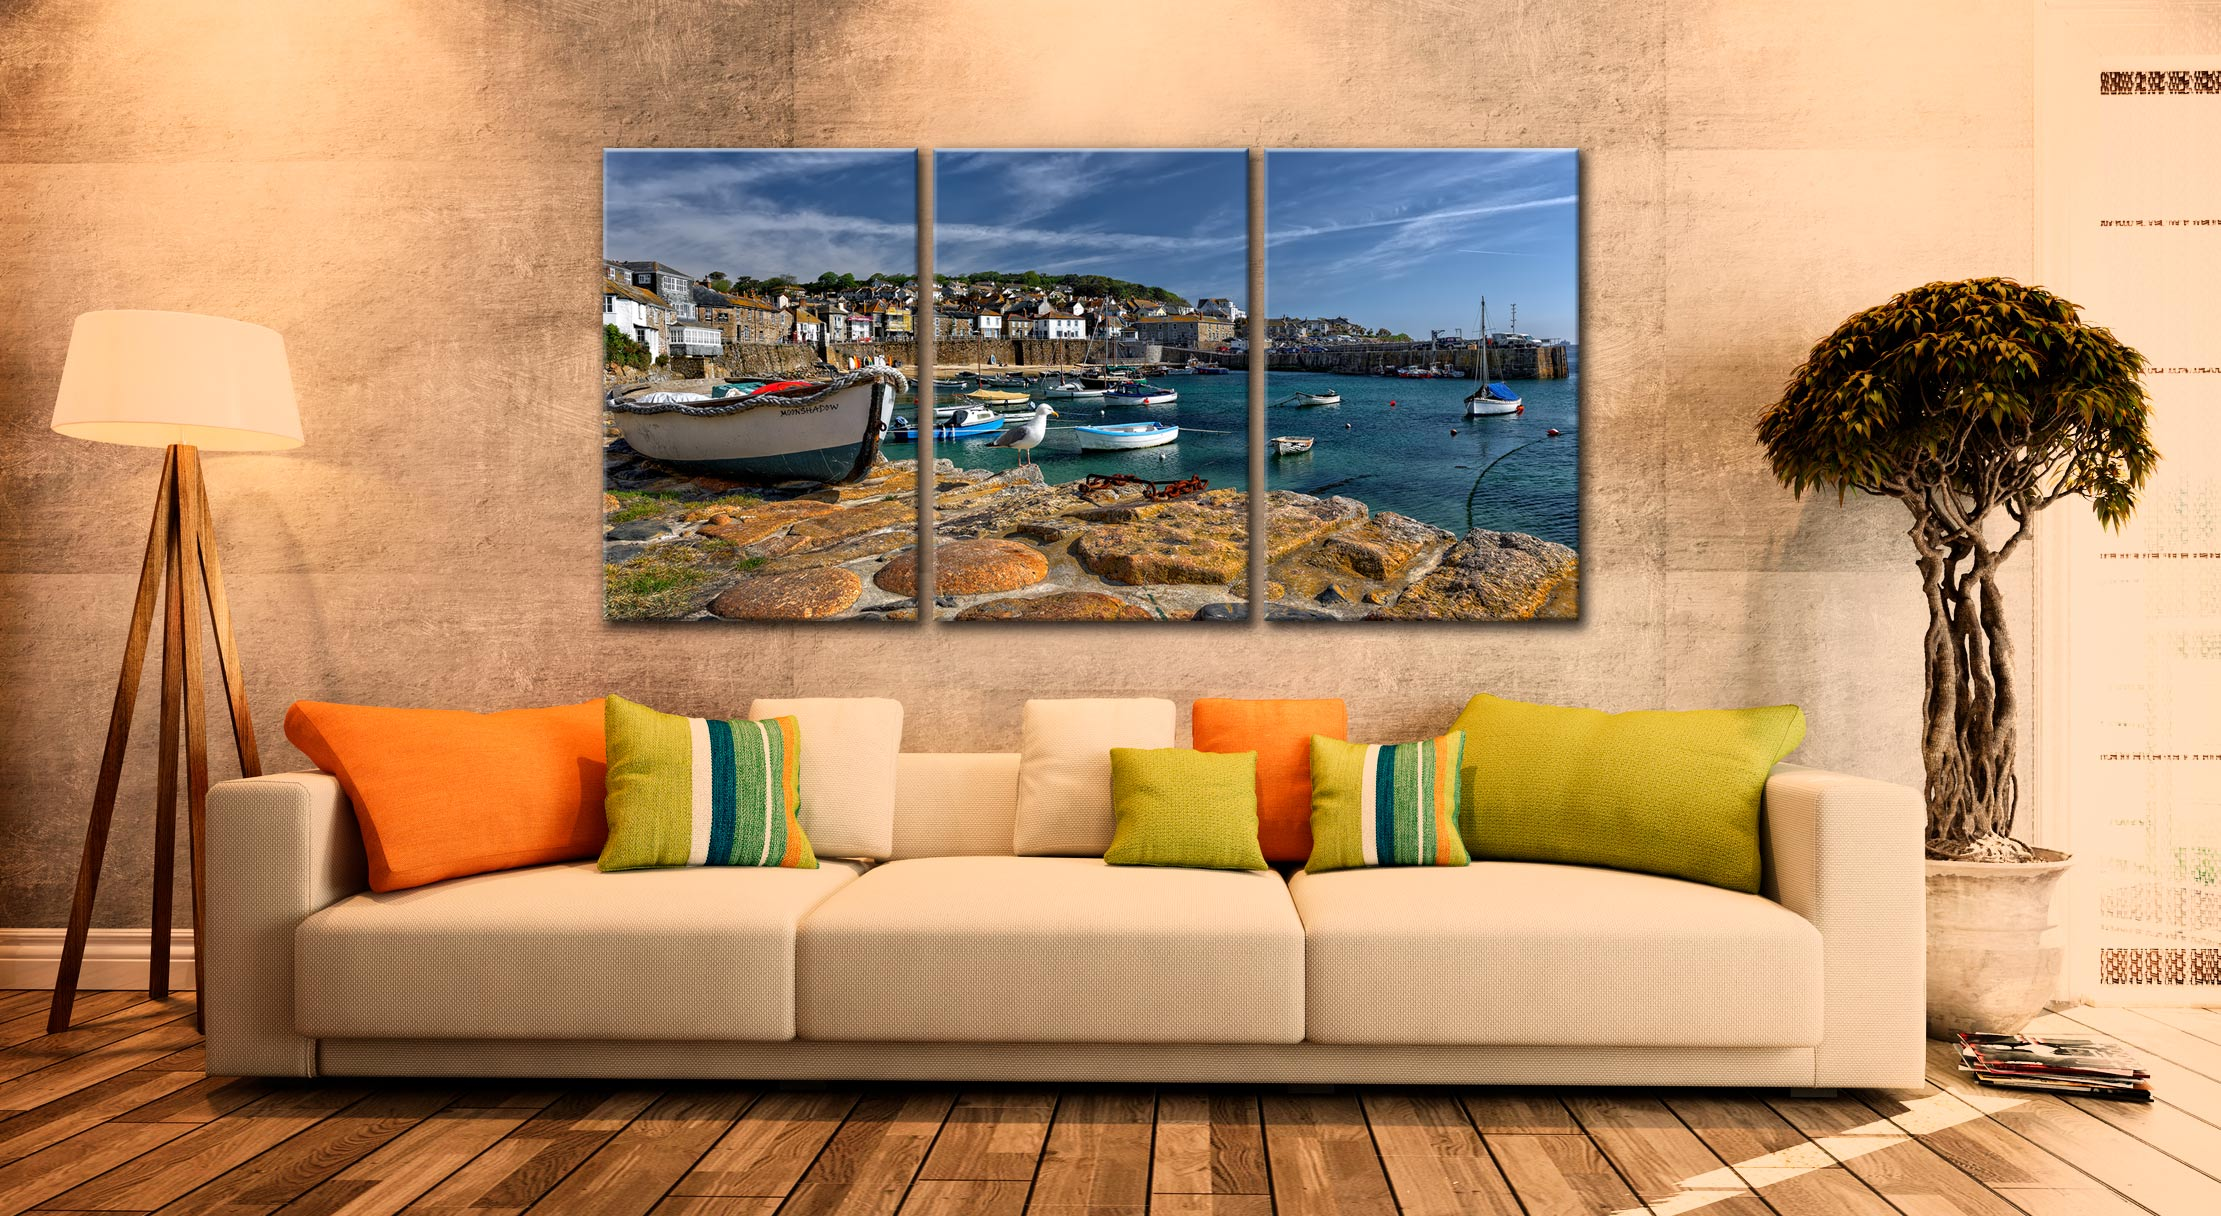 Mousehole Harbour - 3 Panel Canvas on Wall